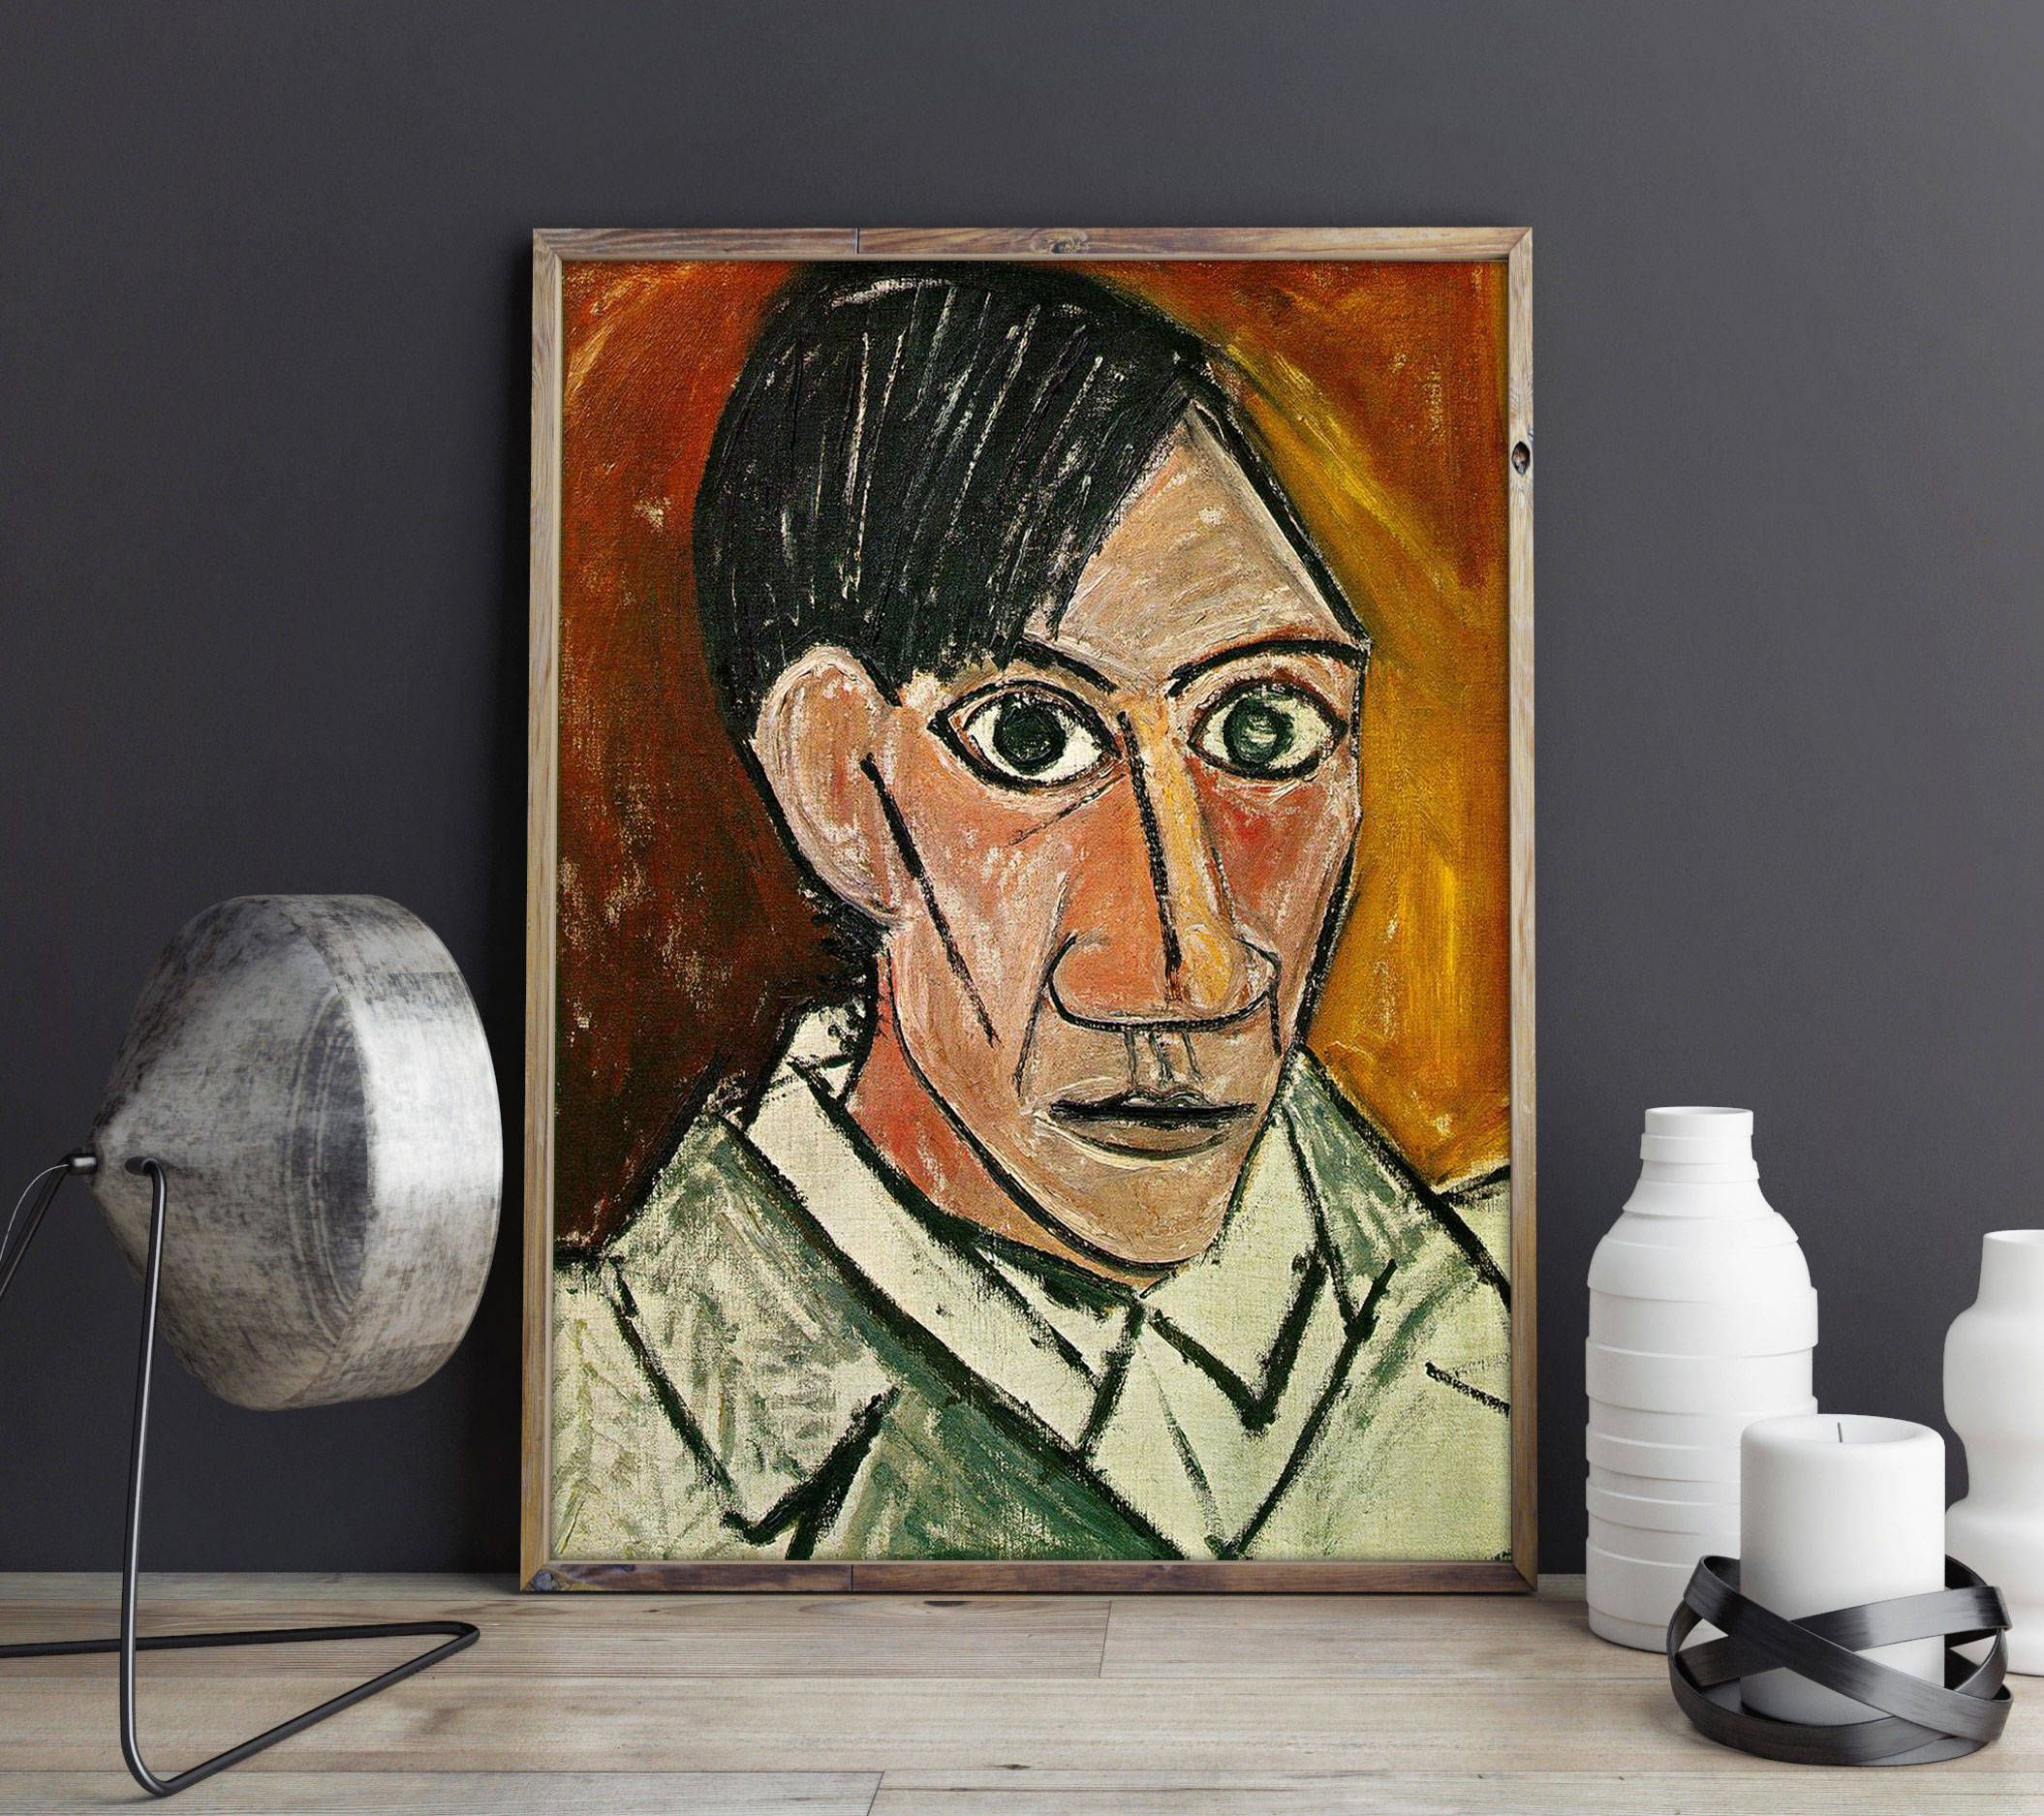 Picasso Painting Picasso Self Portrait Pablo Picasso